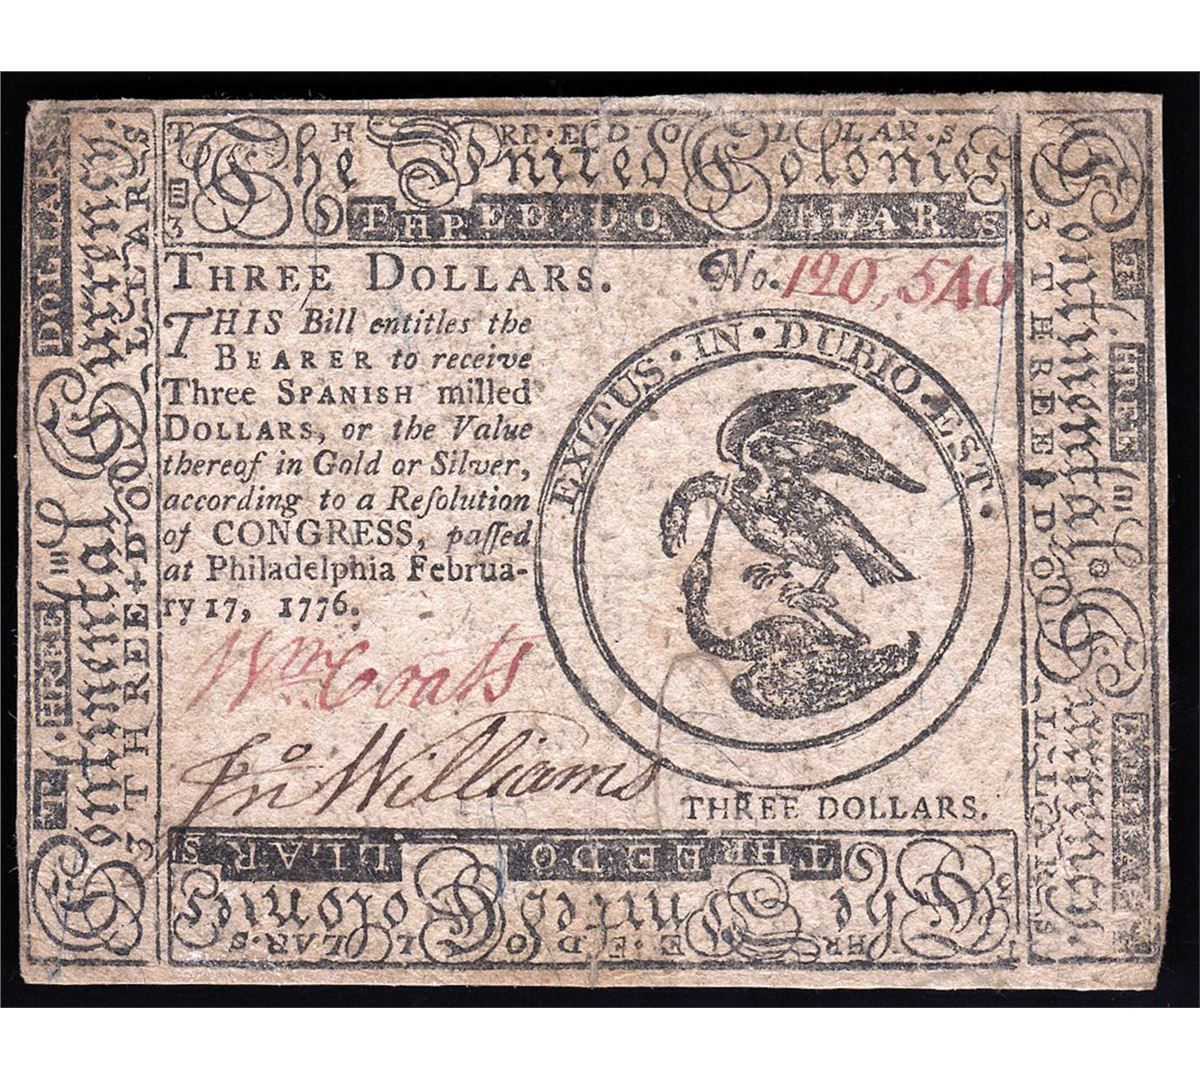 Image  1776 3 Spanish Milled Dollar Colonial Continental Currency